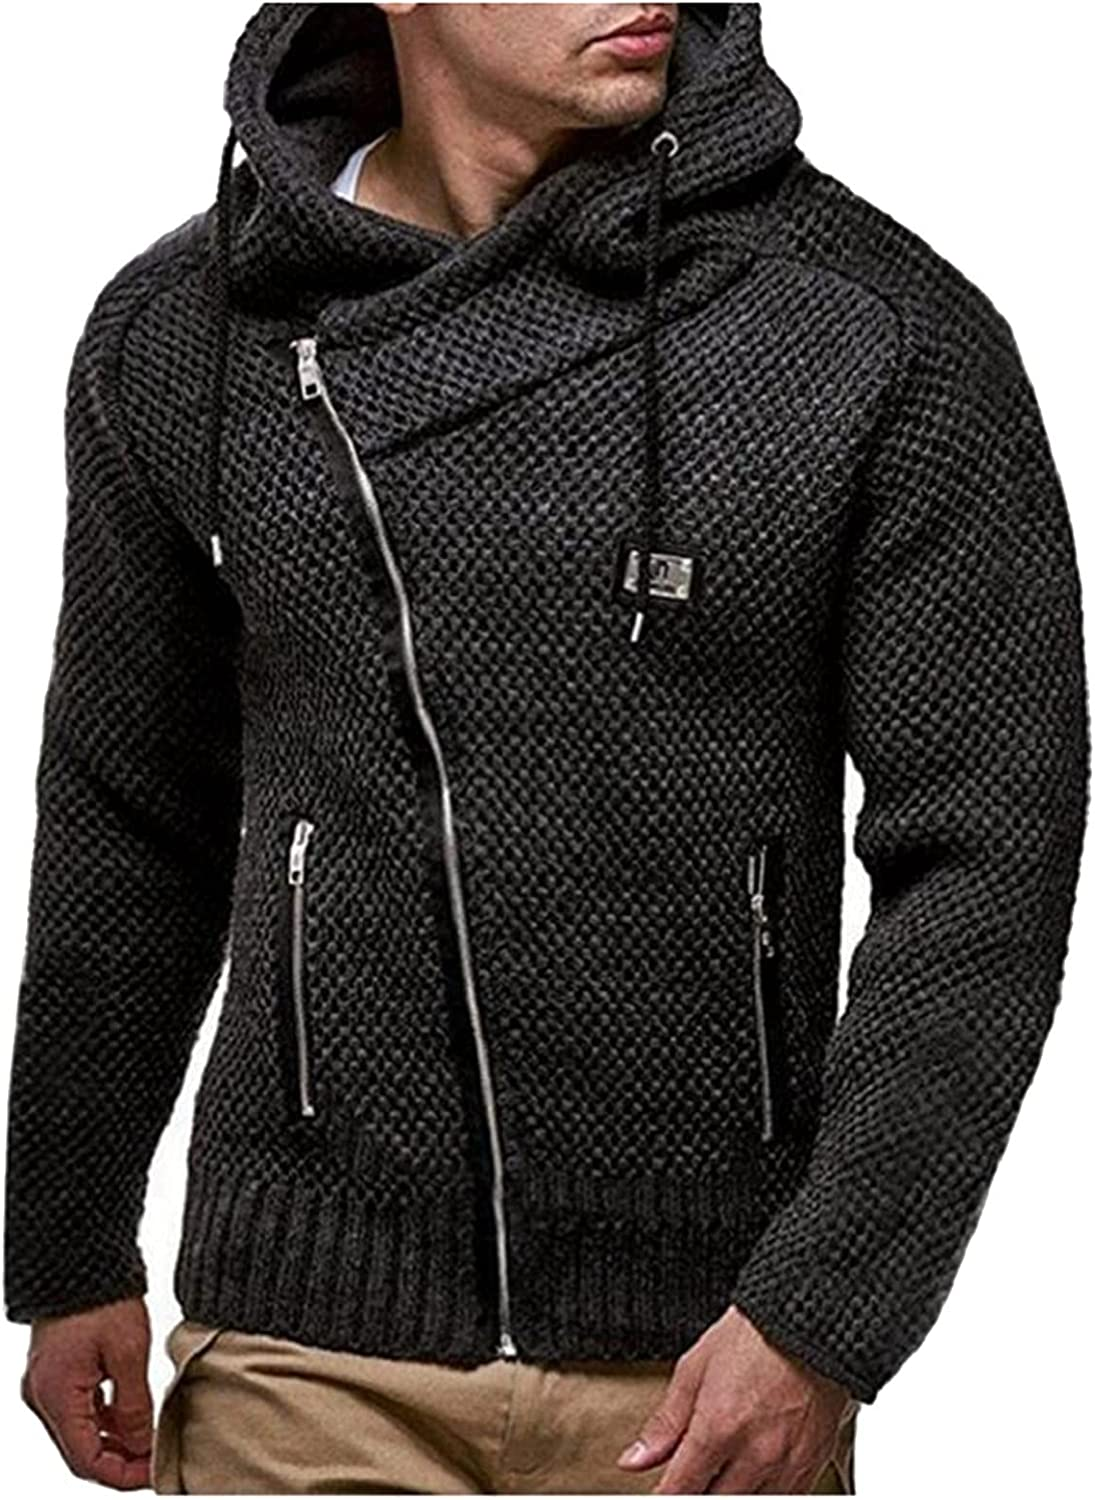 Huangse Men's Fashion Zipper Knitted Hoodie Slim Fit Open Front Sweaters Winter Thick Knit Cardigan Hoodies